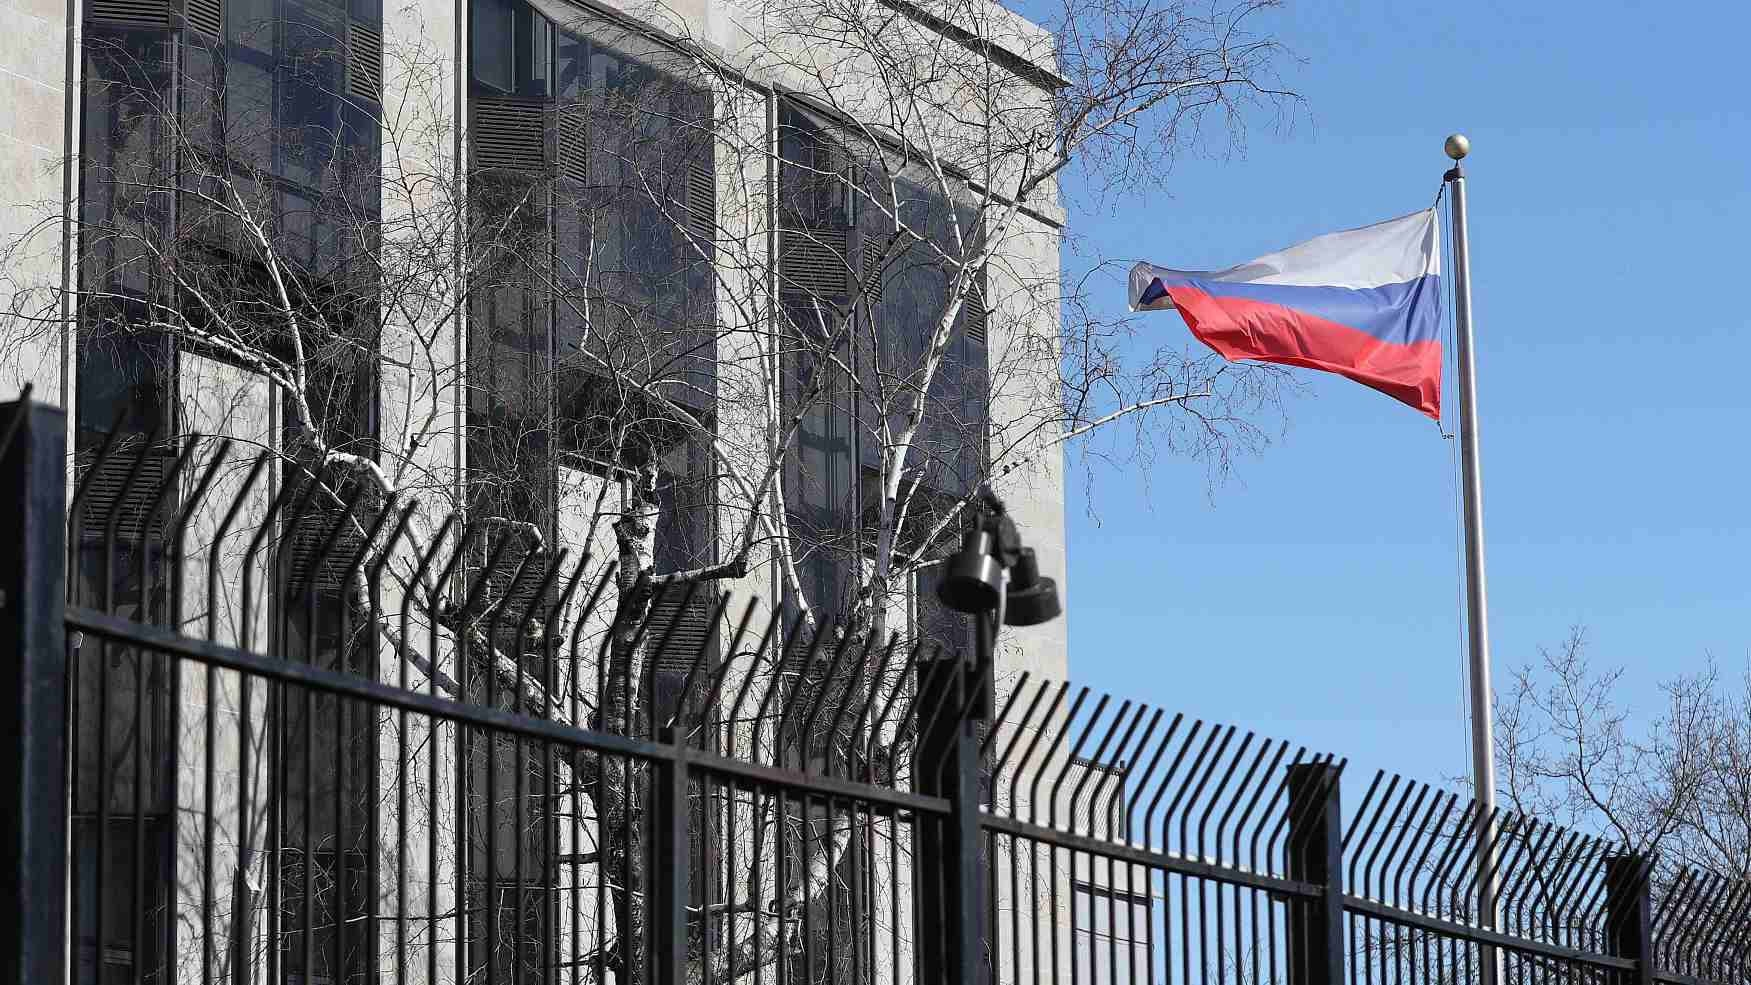 Russia expels 2 German diplomats in tit-for-tat retaliation